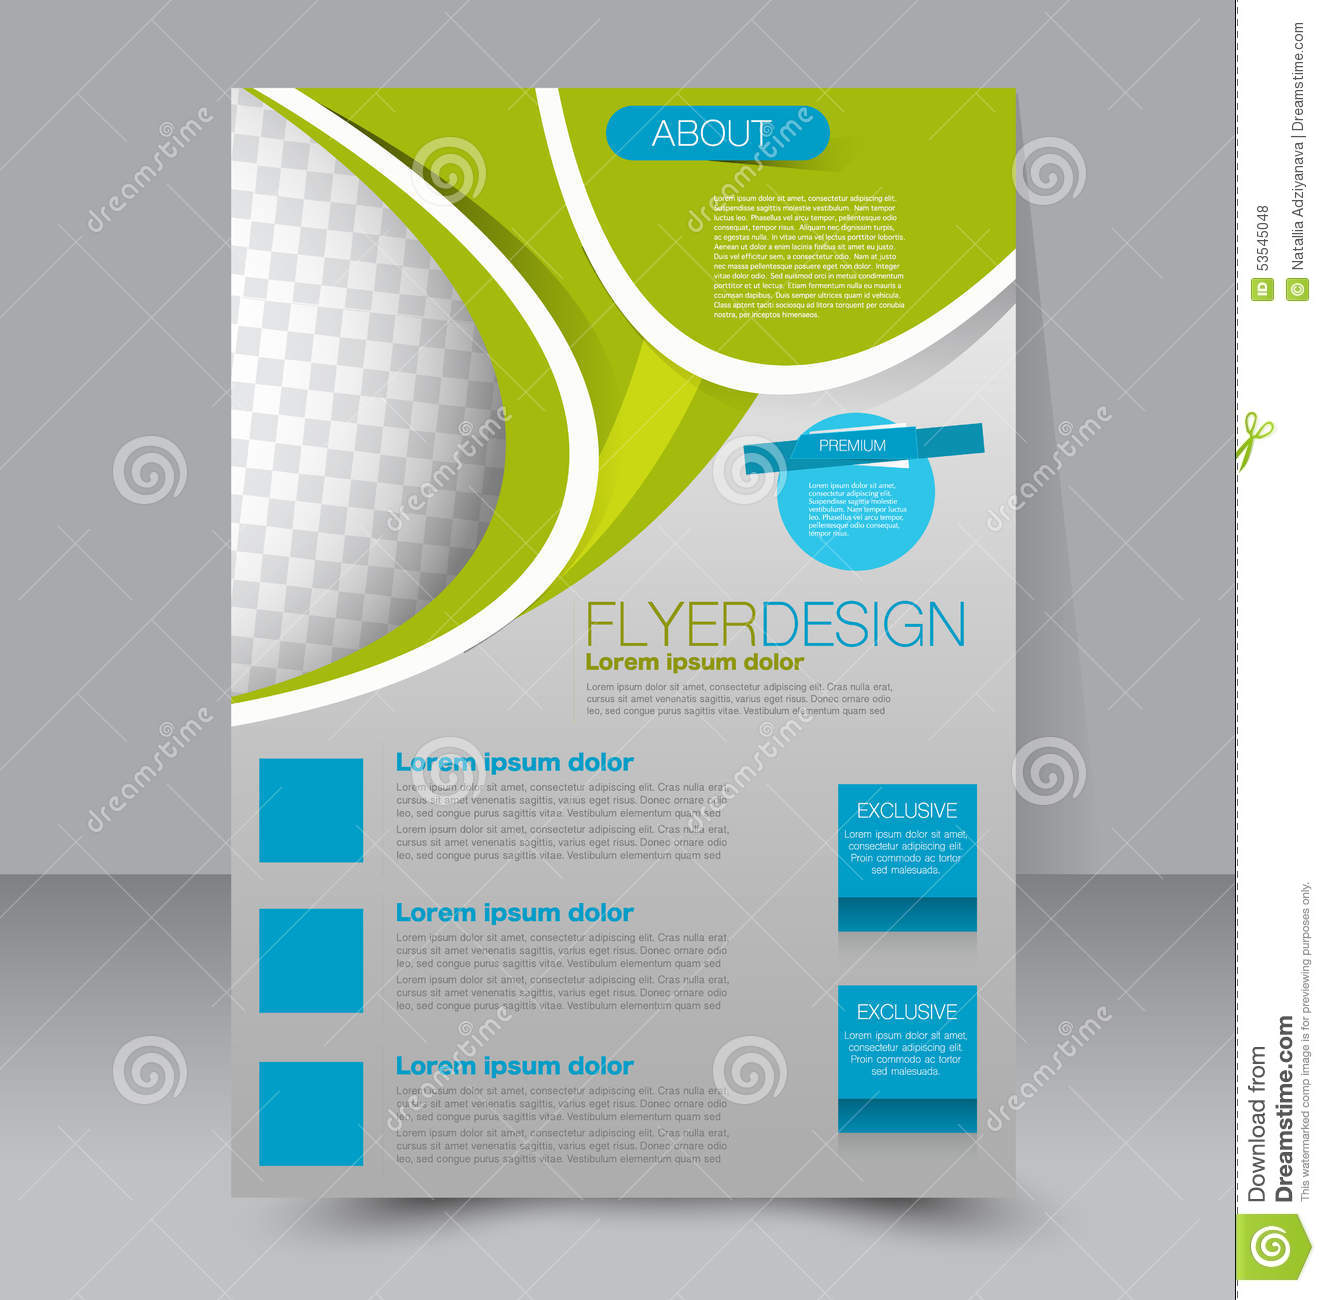 flyer template business brochure editable a4 poster stock vector flyer template business brochure editable a4 poster royalty stock photos